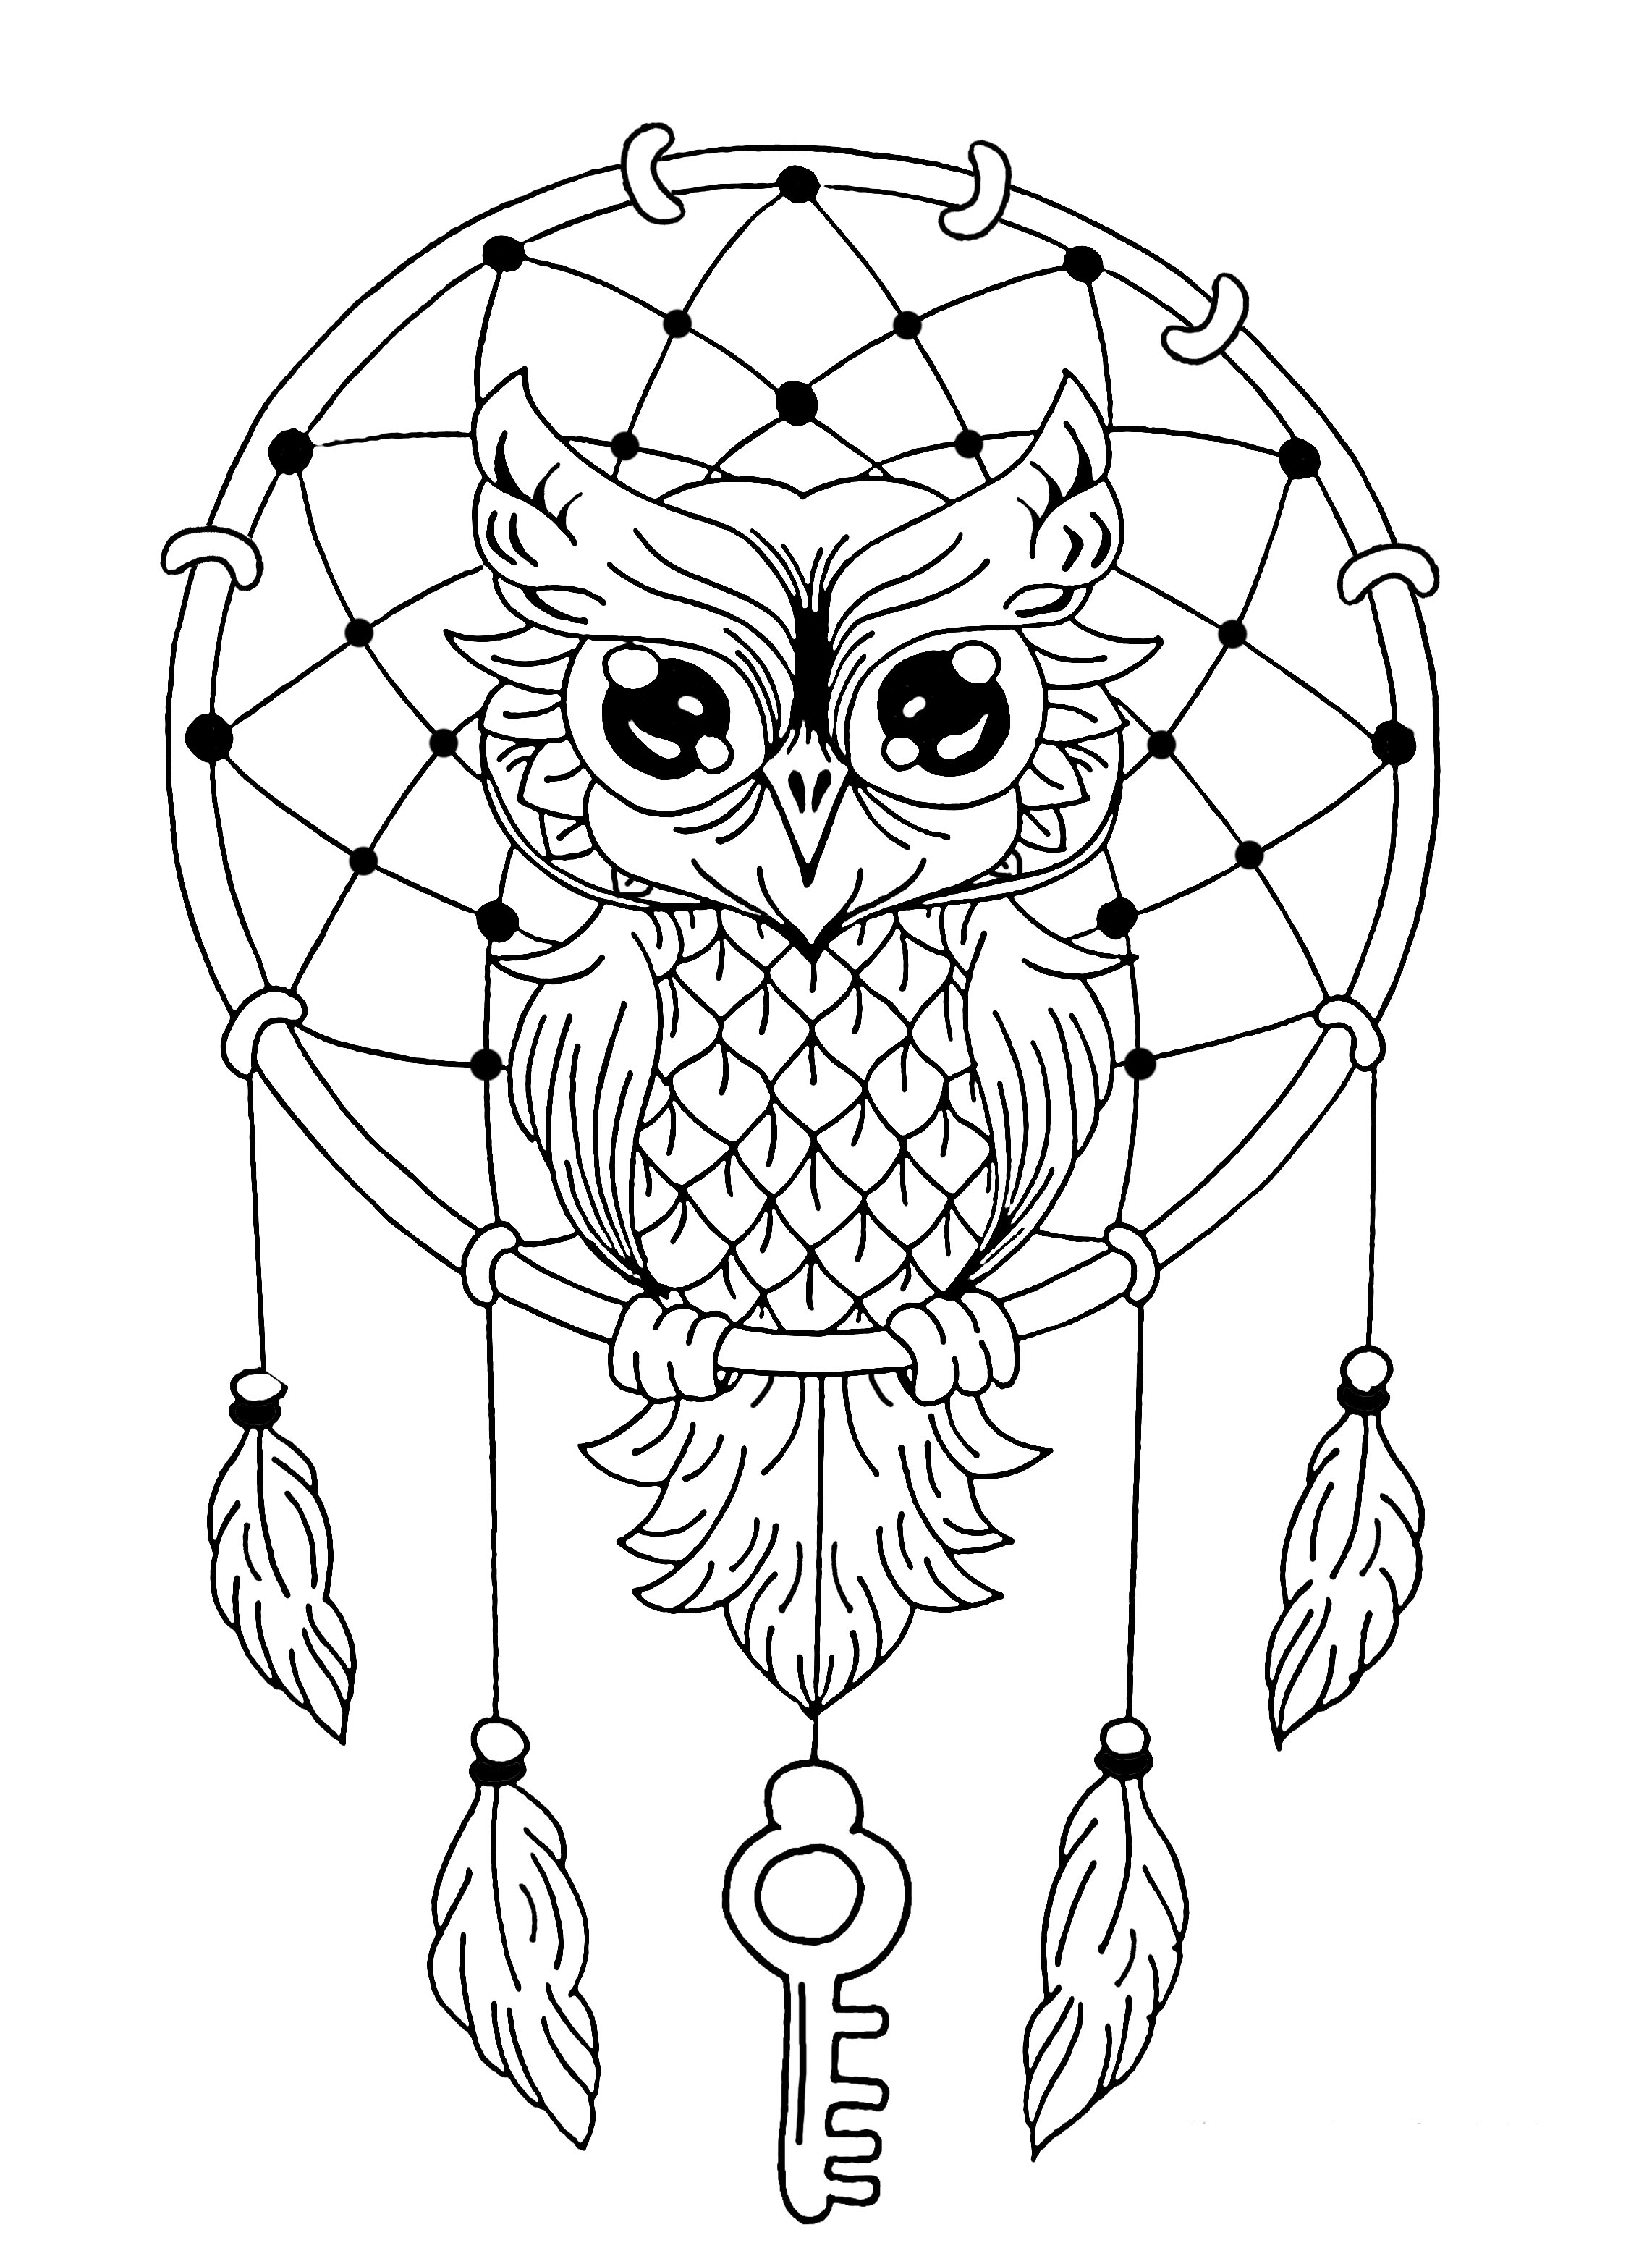 Favori Hibou attrape reve | Animaux - Coloriages difficiles pour adultes  JU58